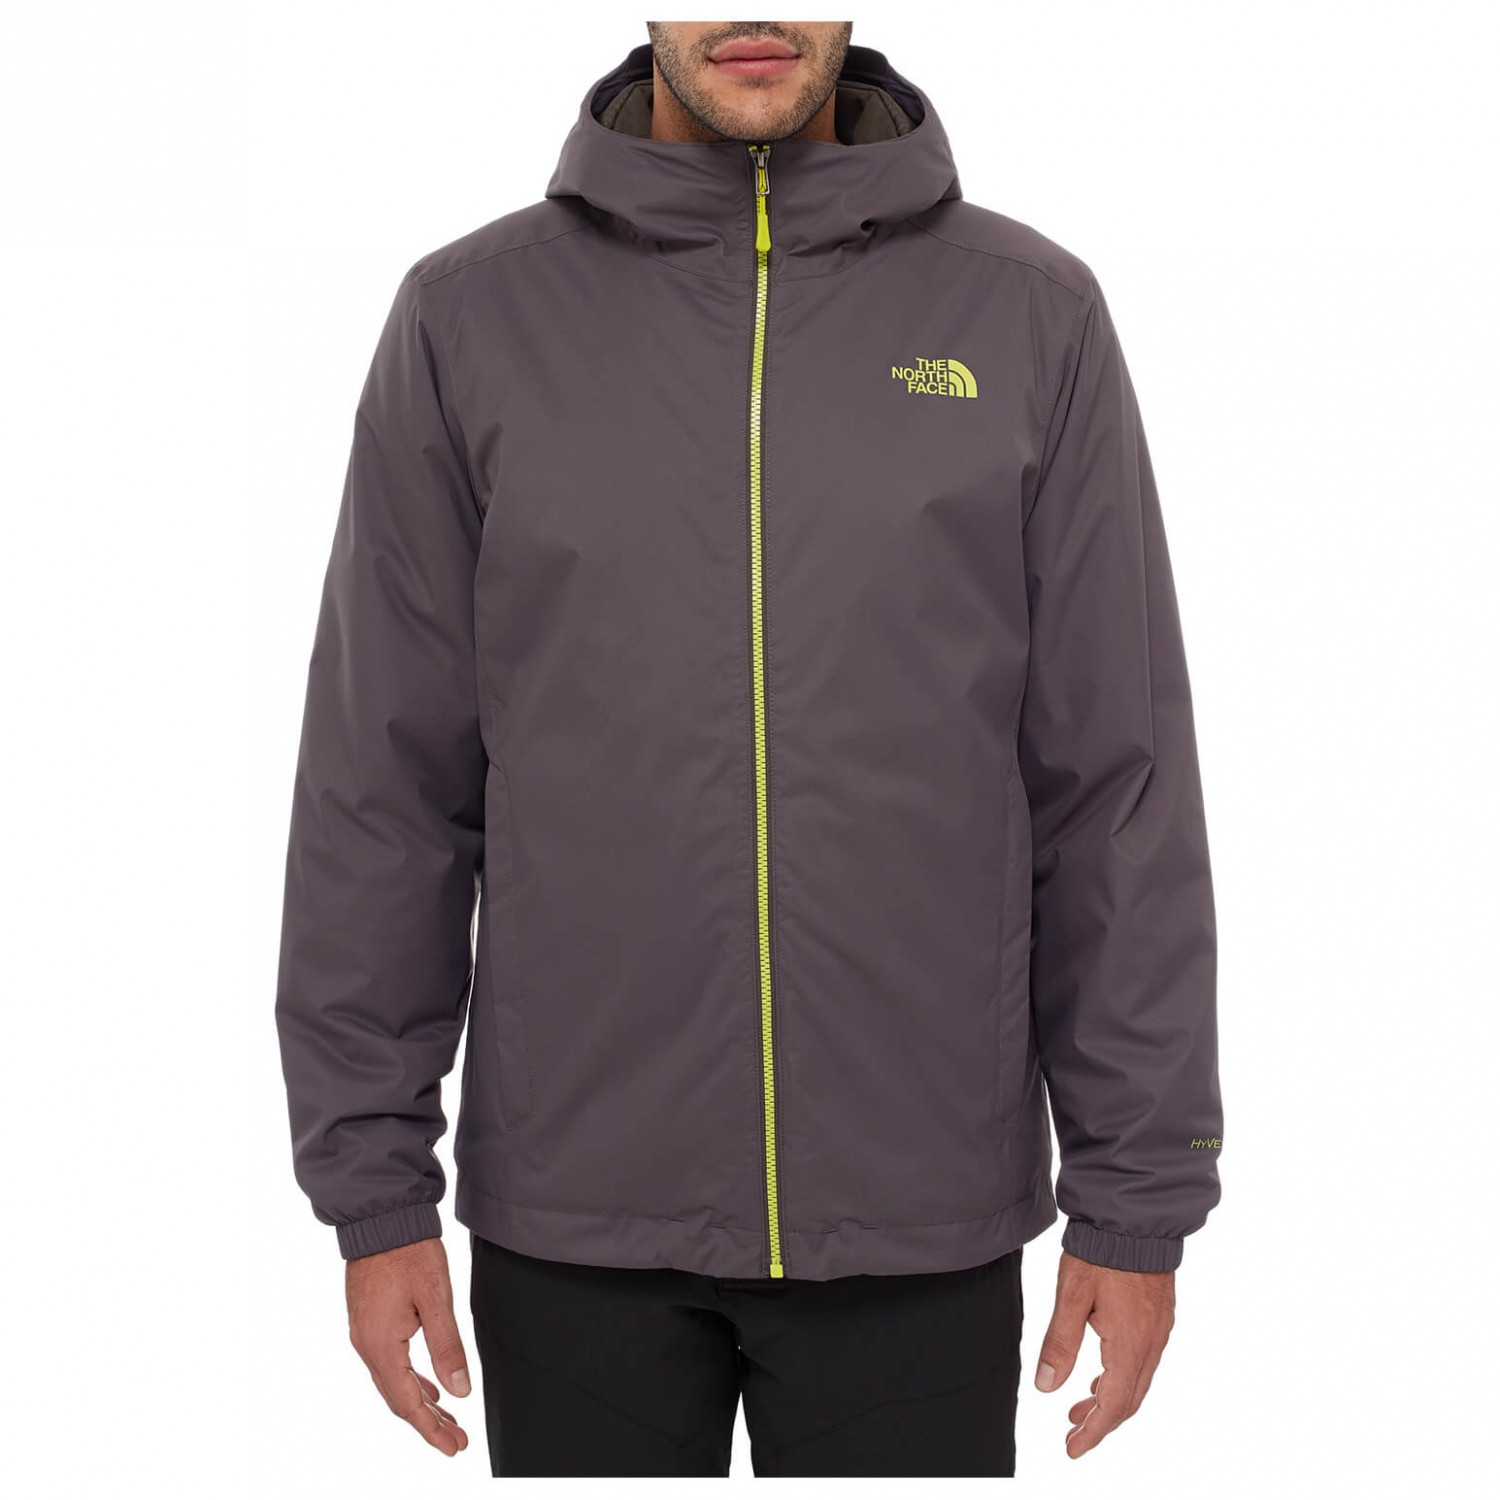 The North Face Quest Insulated Jacket Veste d'hiver Homme